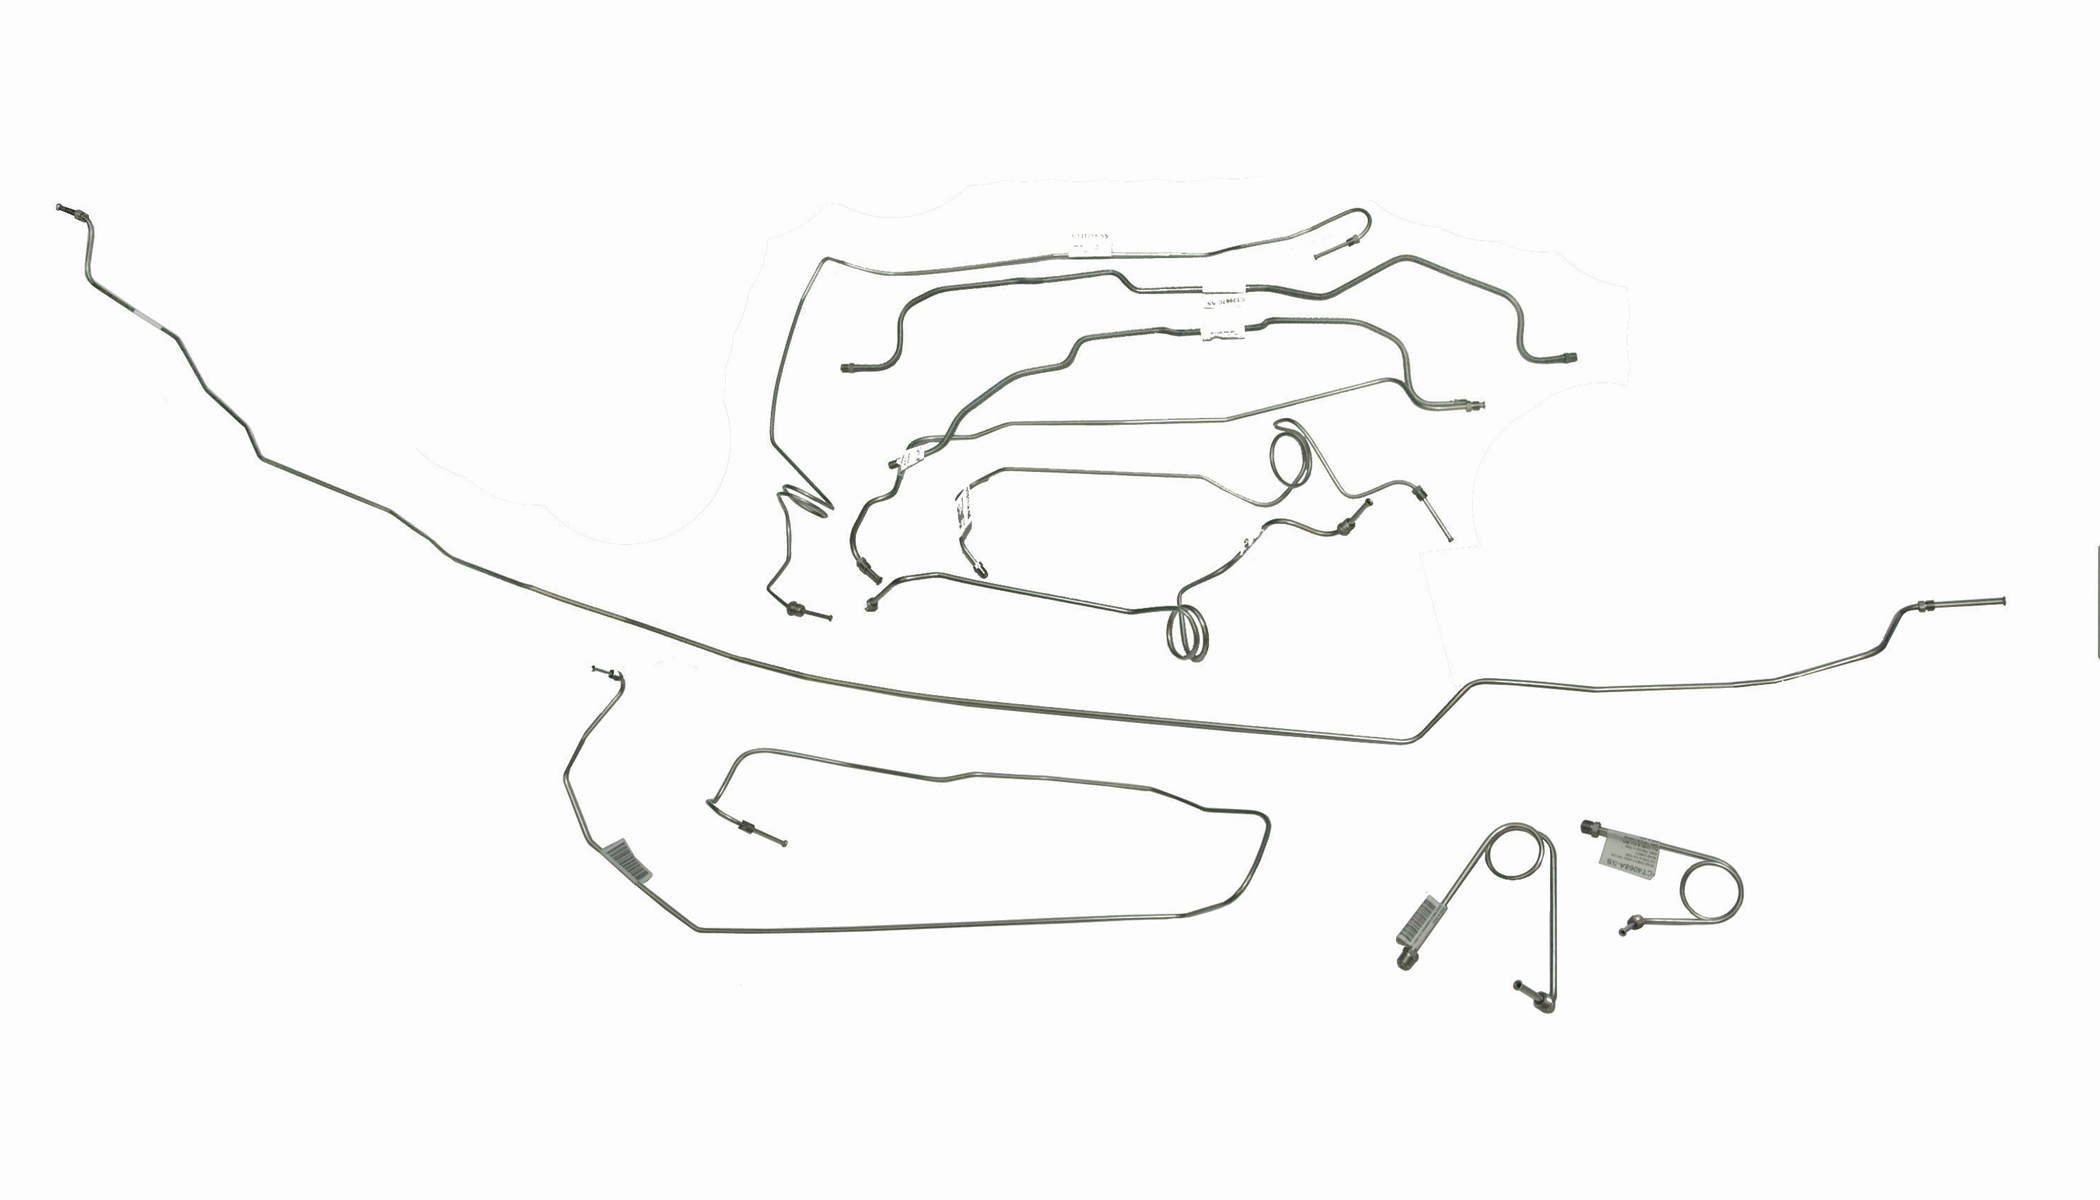 Replacement Brake And Fuel Lines For Gm Gmc 4wd Trucks